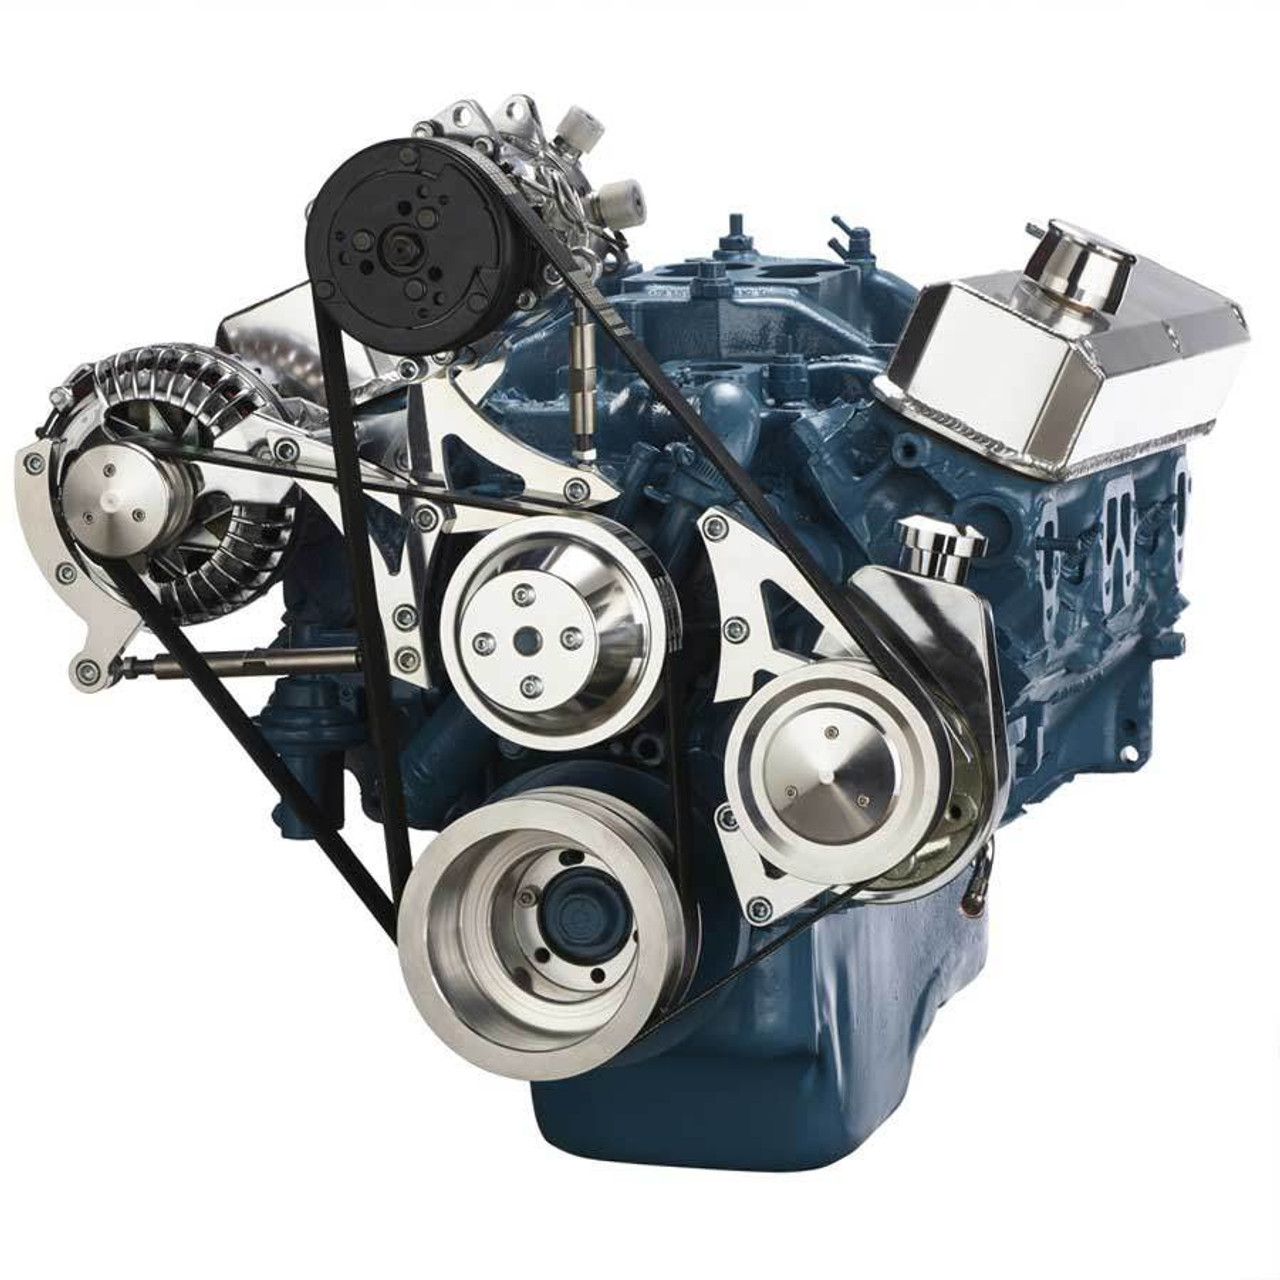 small block chrysler serpentine conversion, air conditioning and power steering  318 engine fan belt diagram #12